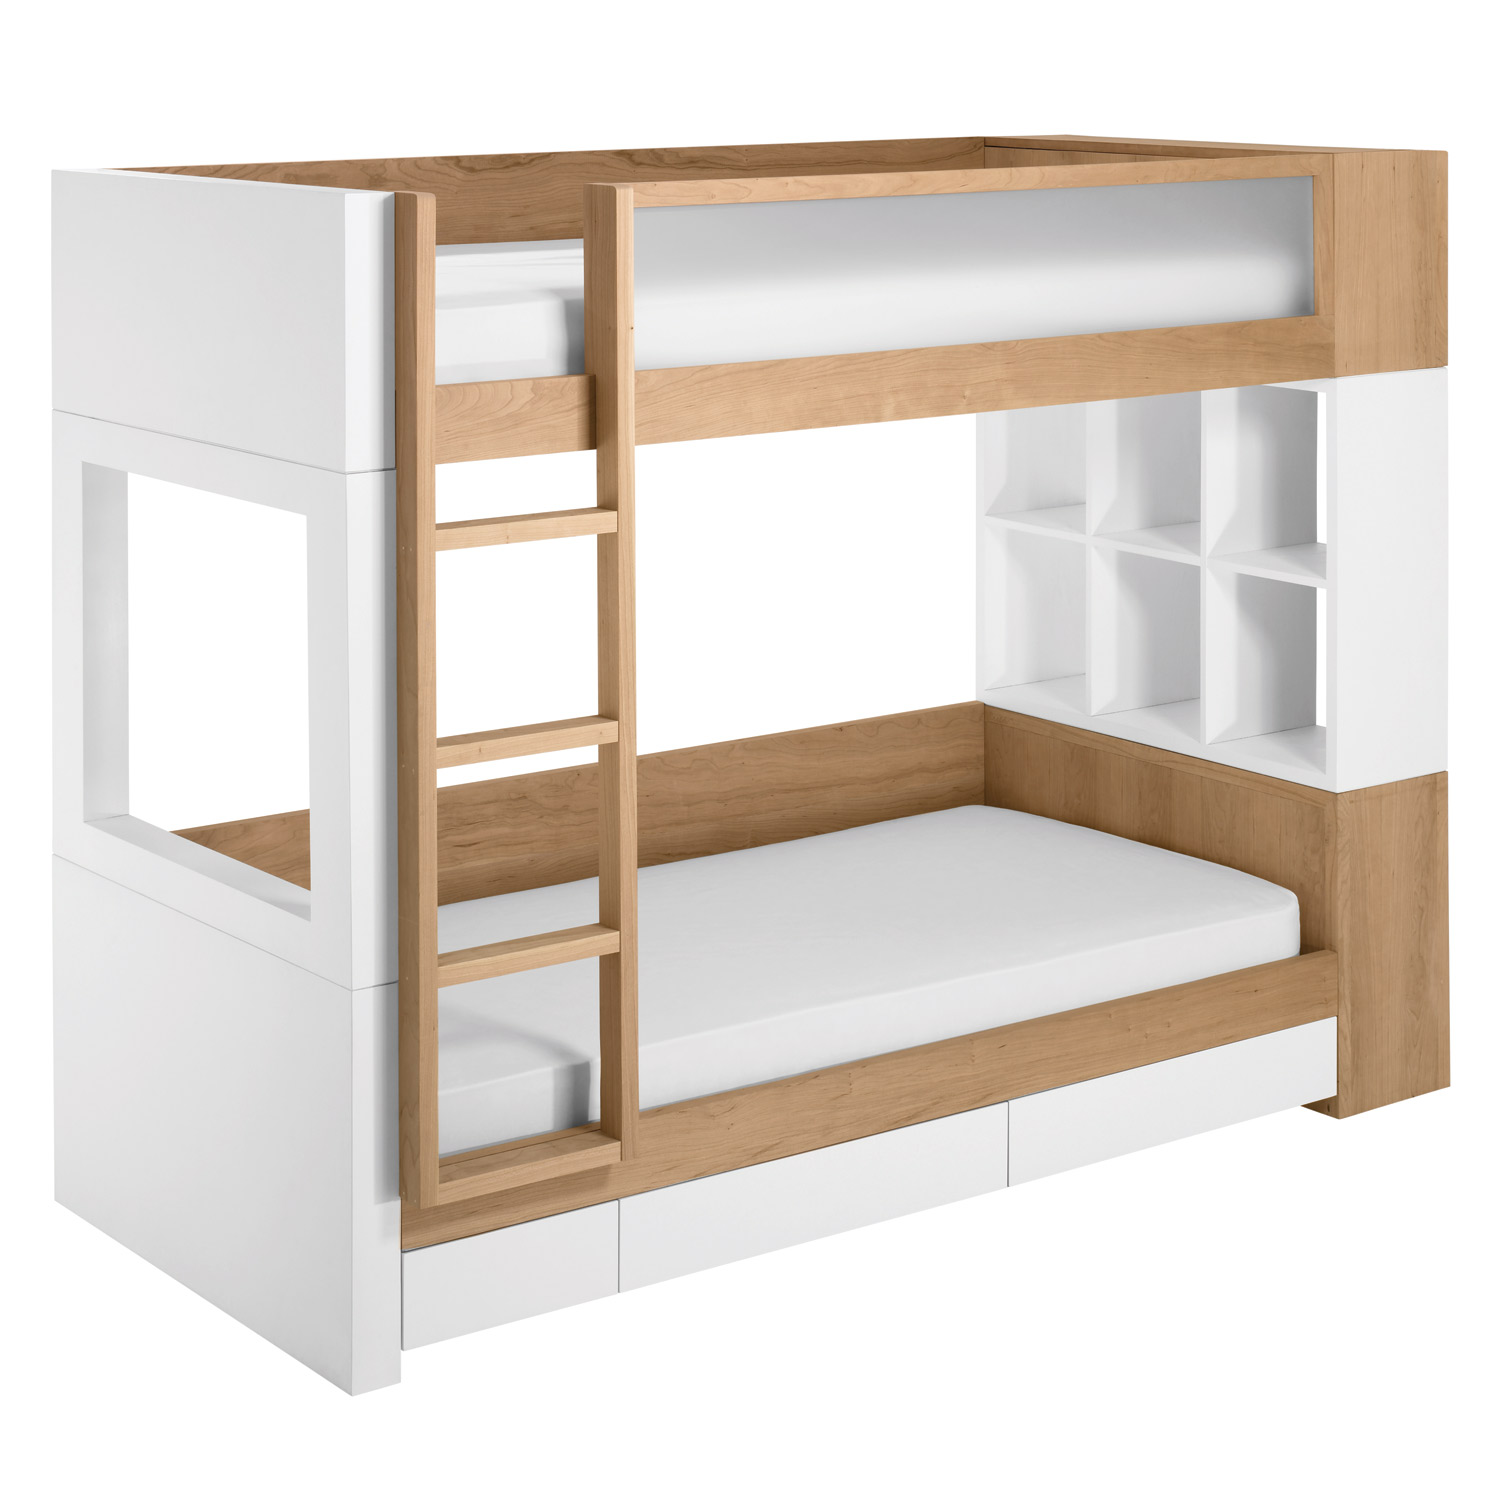 Incredible Style and Modern Bunk Beds for Kids Bedroom: Loft Bed Space Saver | Modern Bunk Beds | Ikea Bunk Bed Reviews